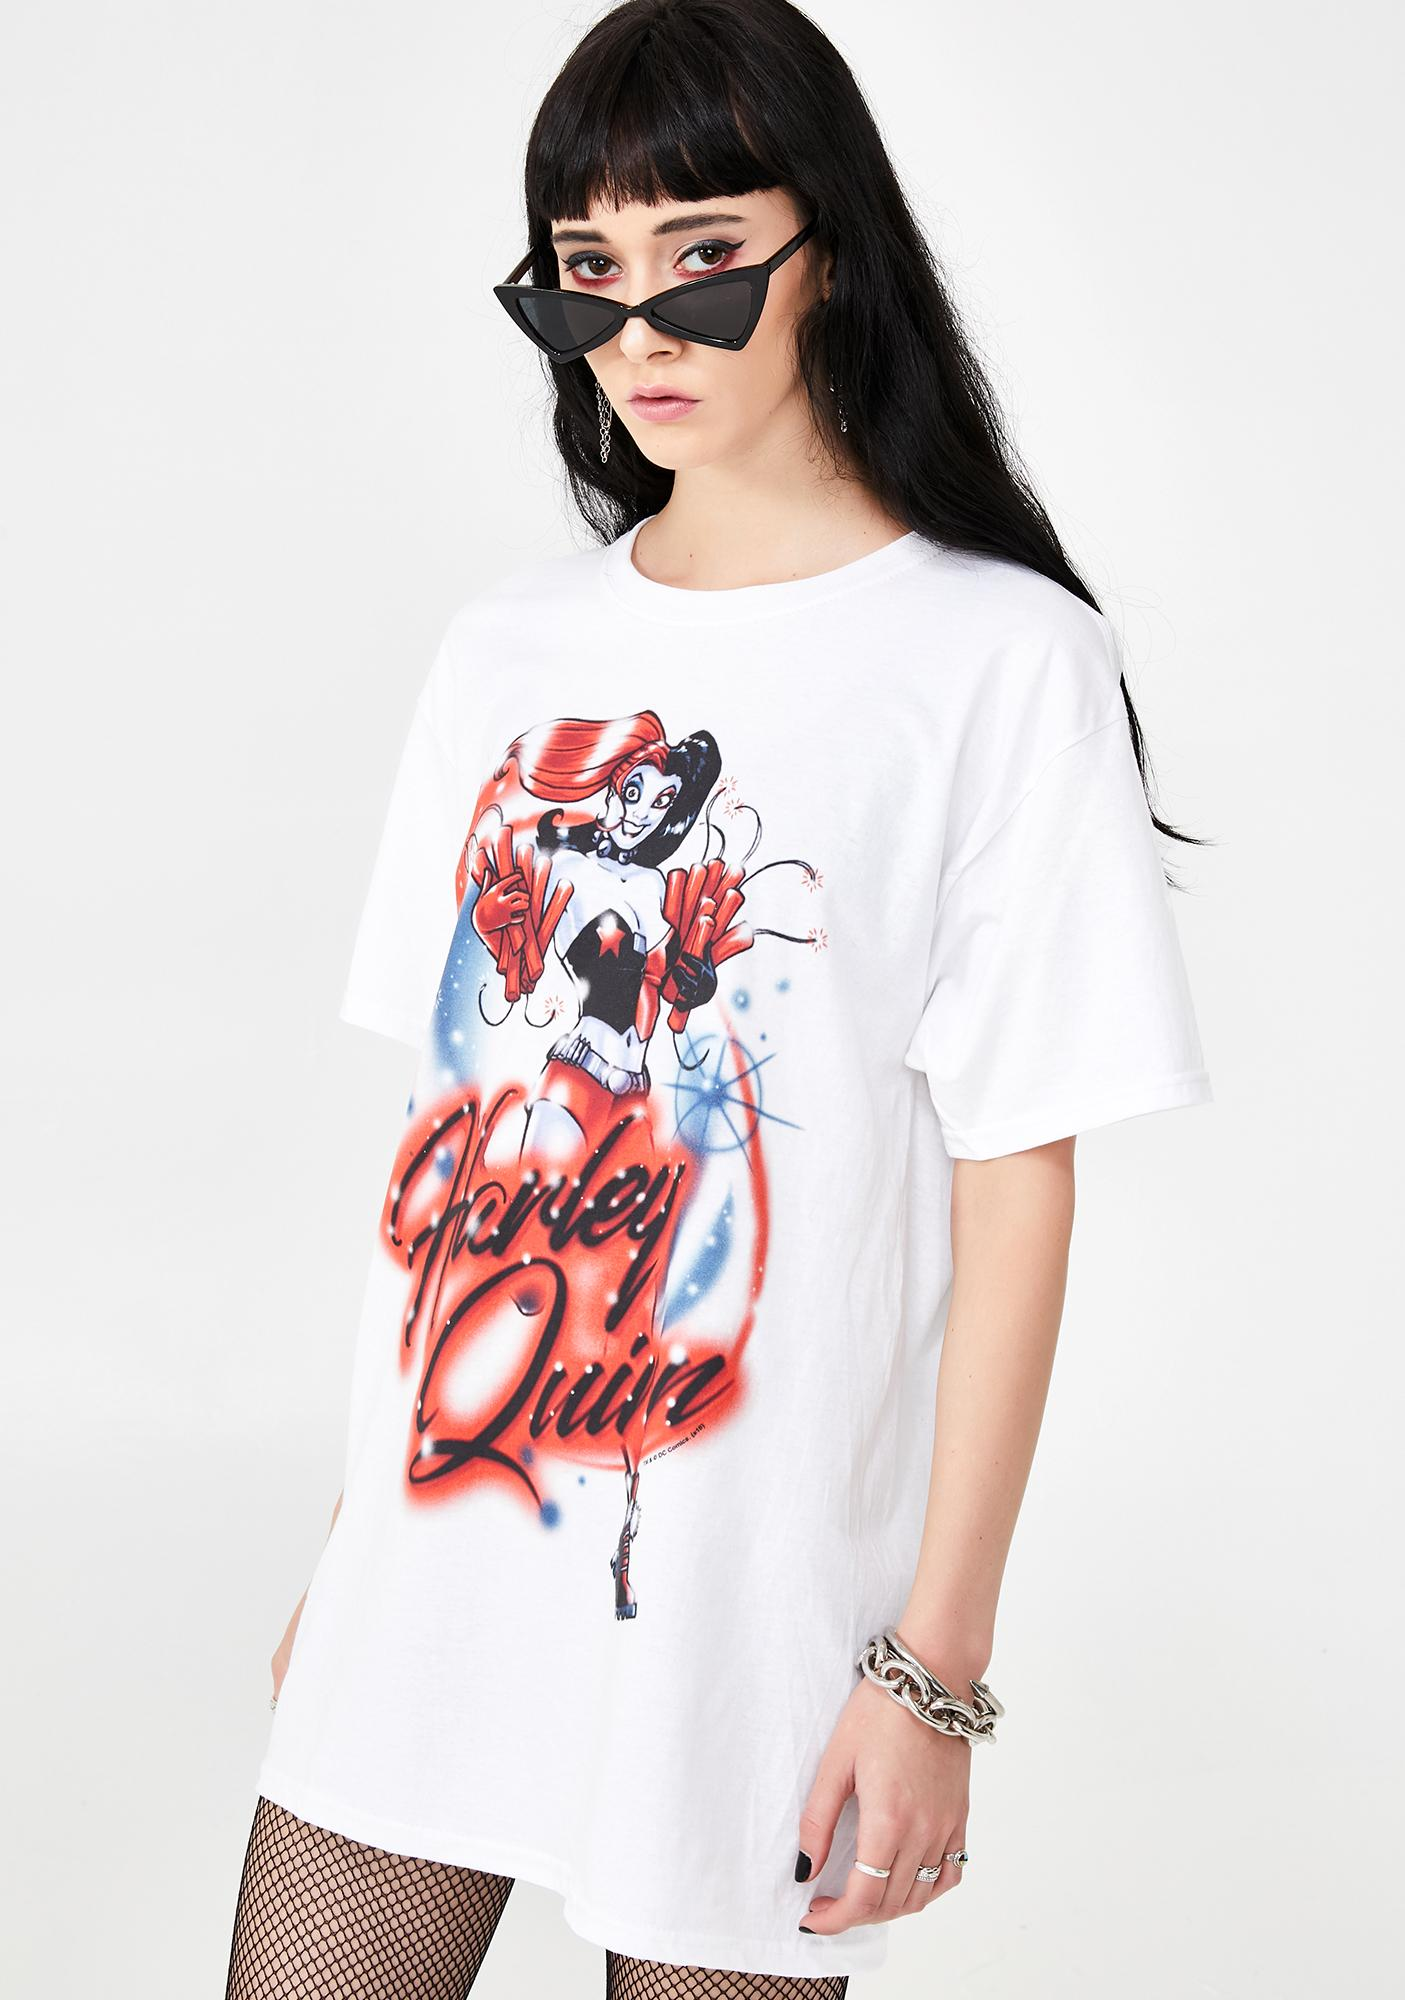 Trevco Harley Quinn Graphic Tee